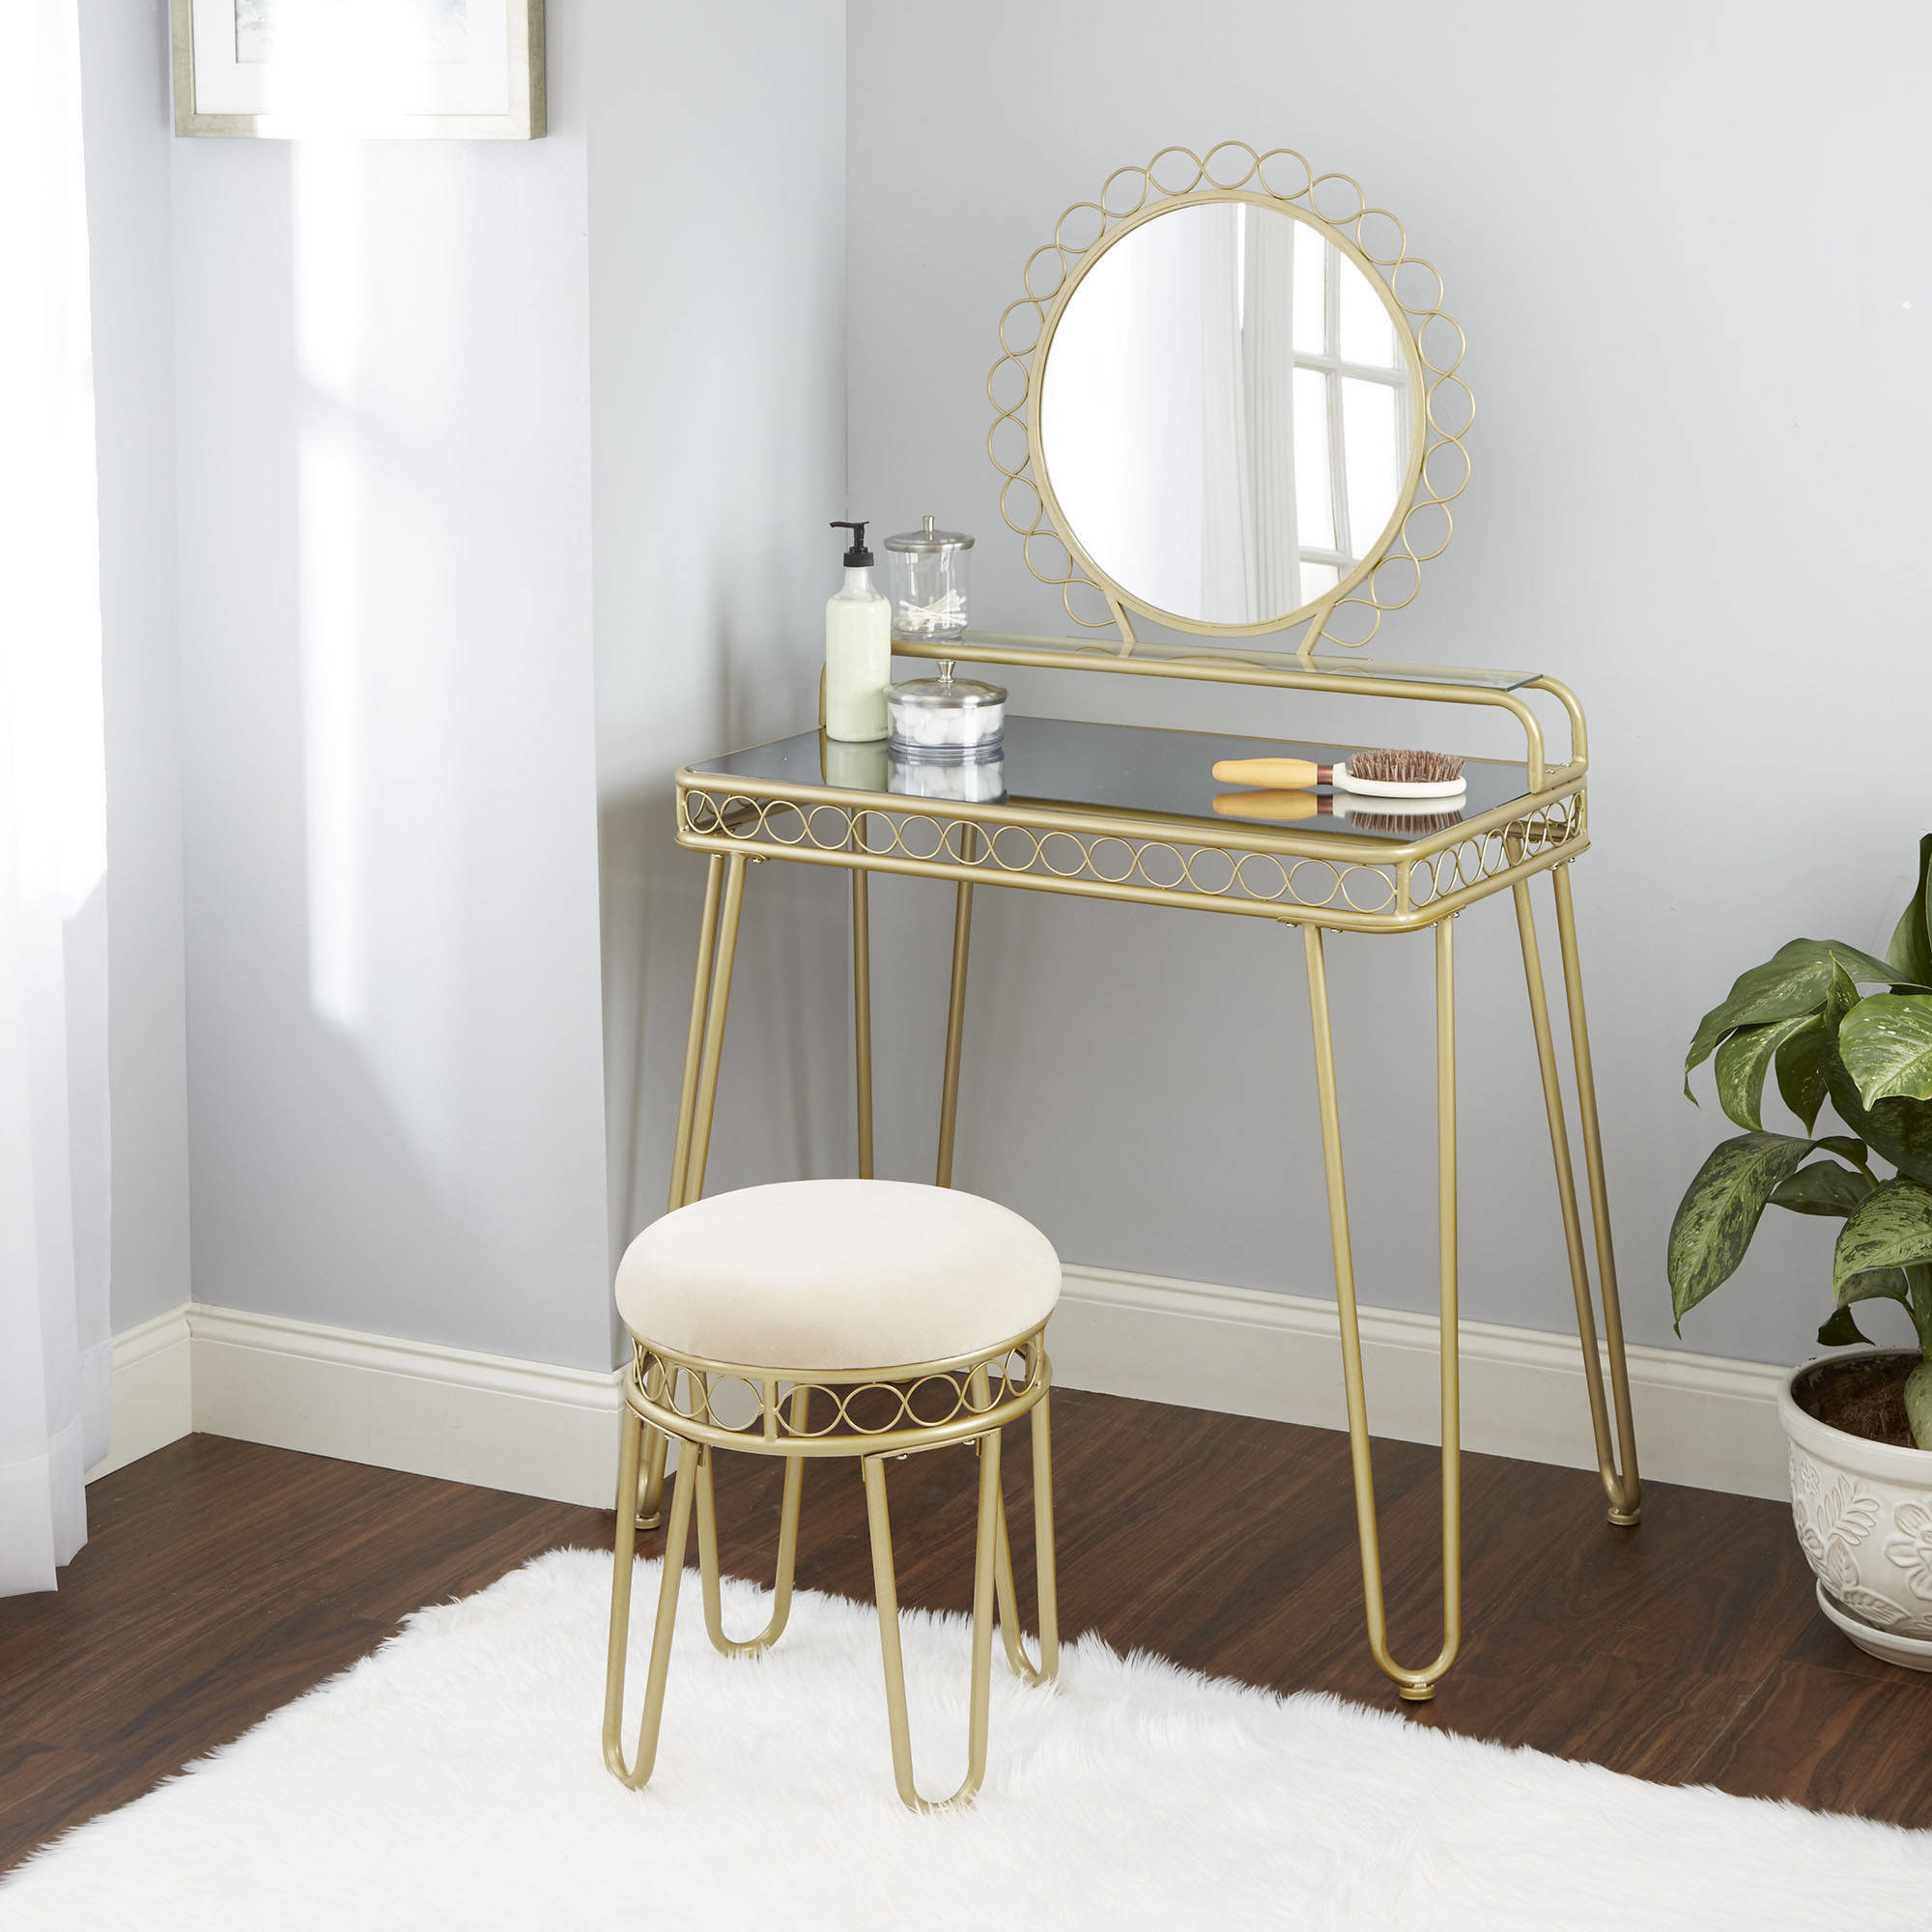 The gold and mirrored vanity table and stool